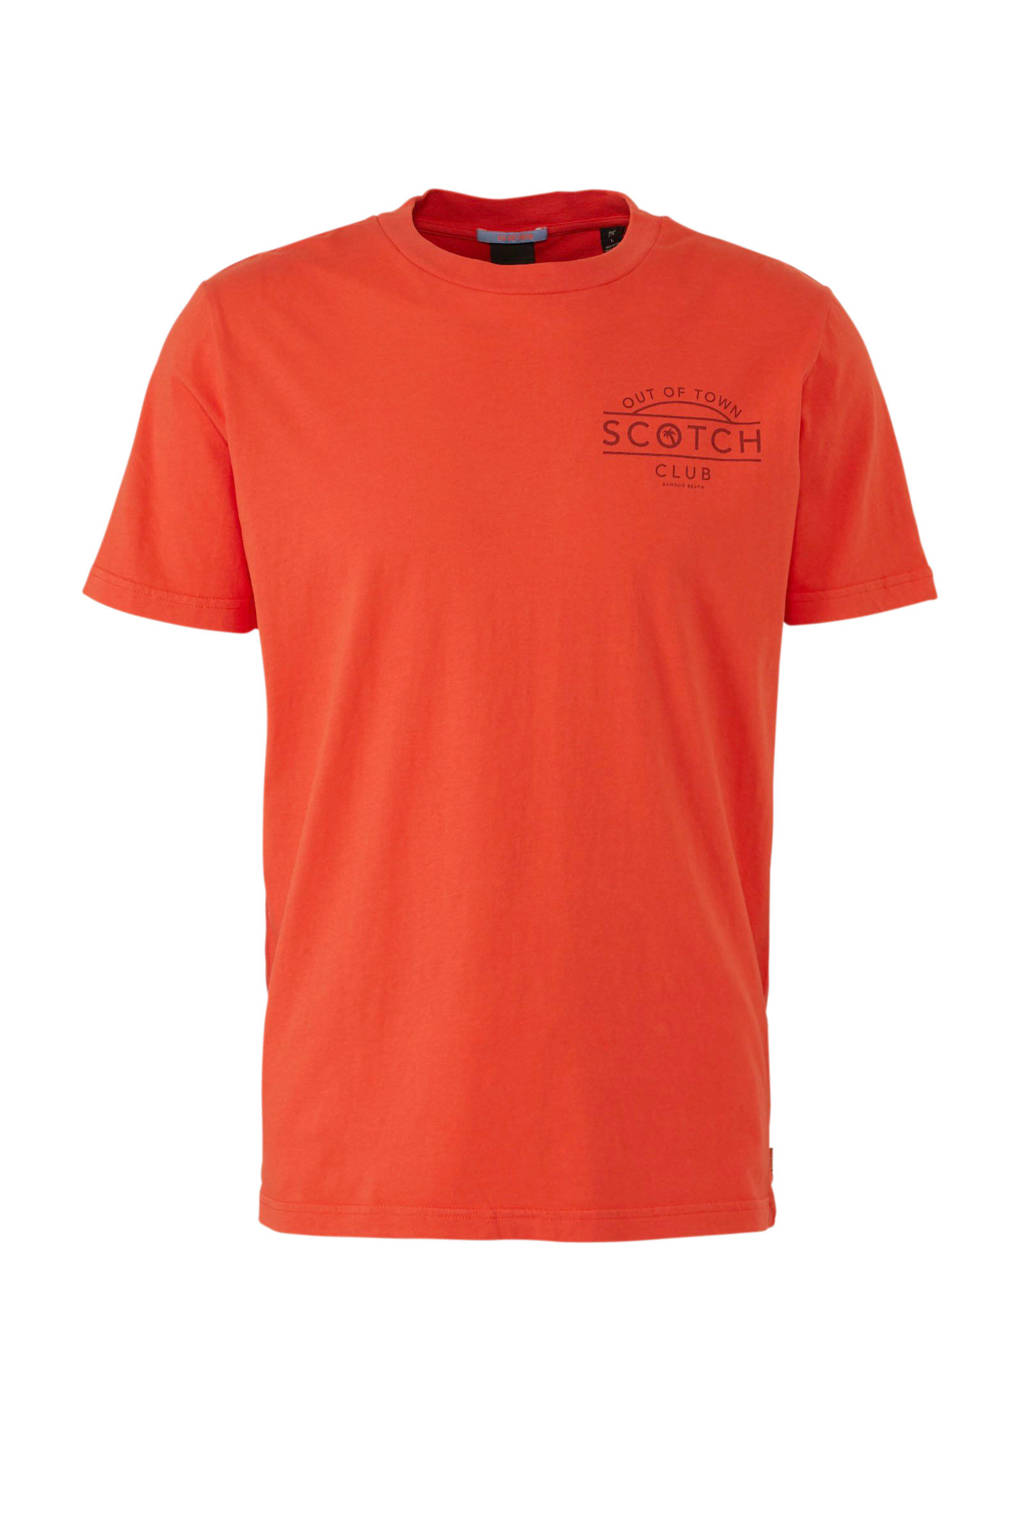 Scotch & Soda T-shirt, Rood